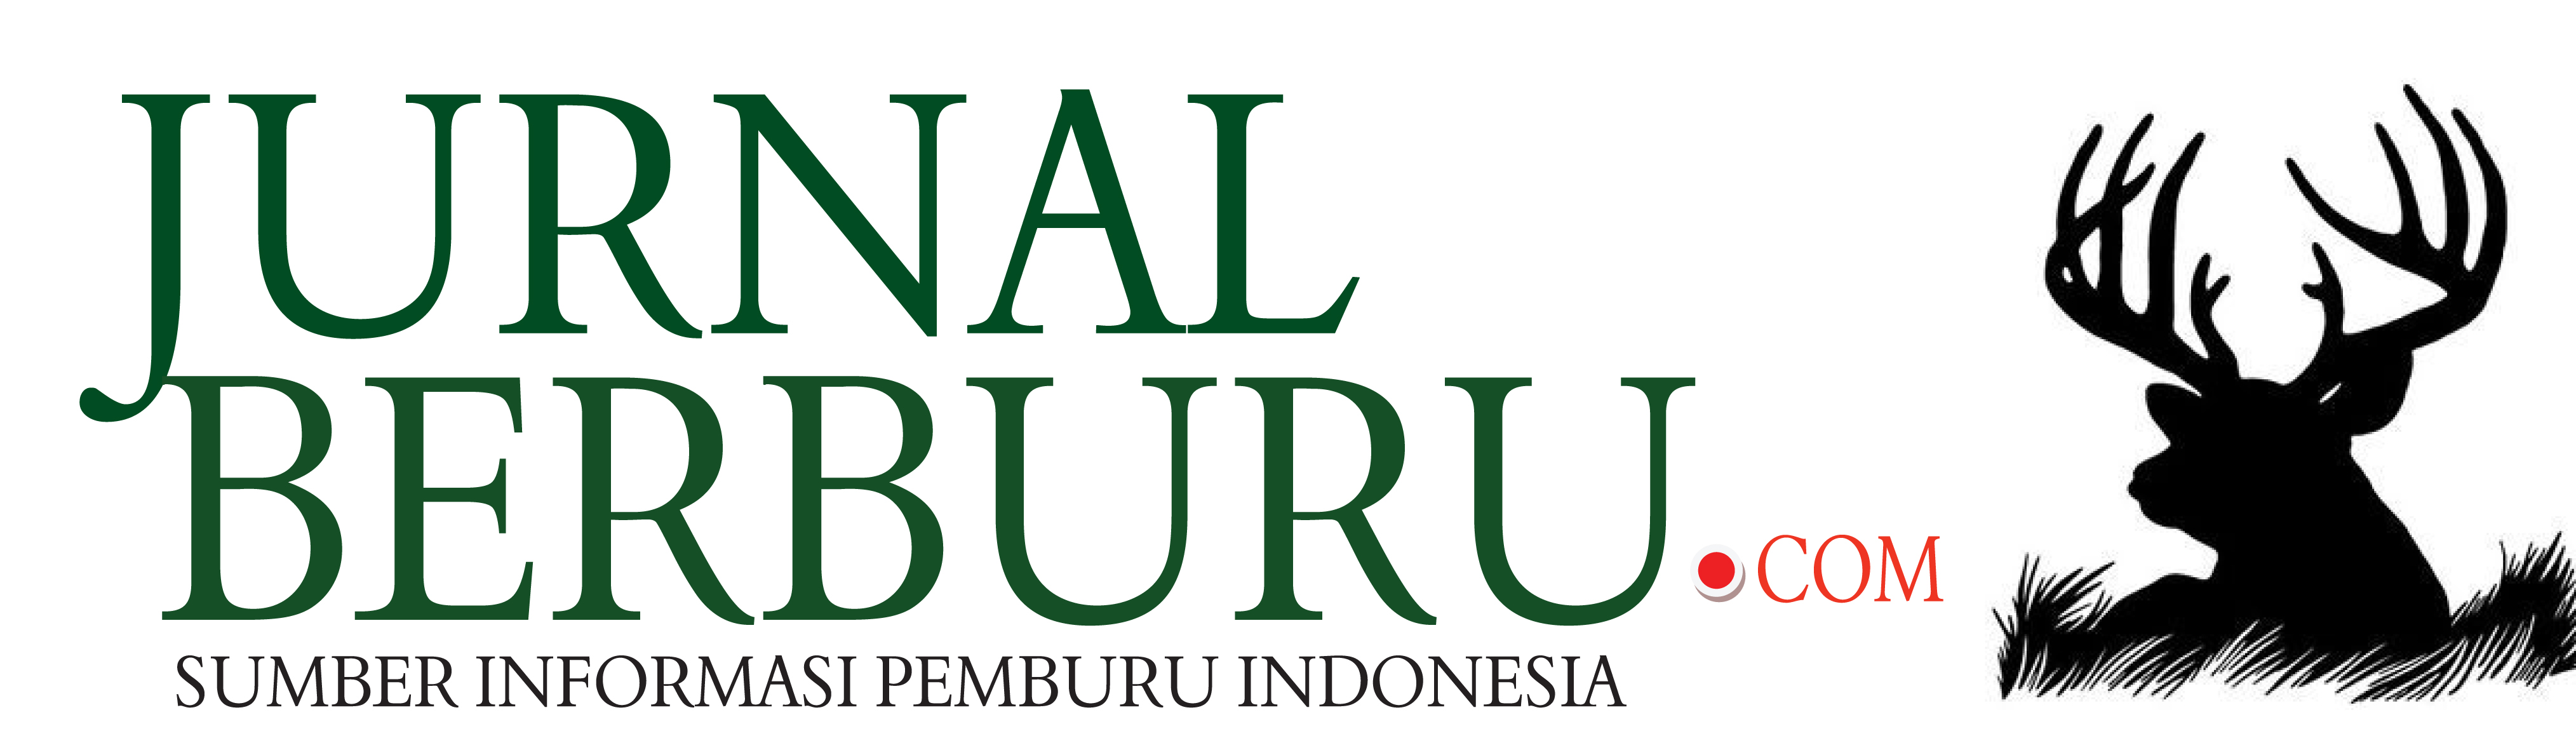 Jurnal Berburu – Official Website